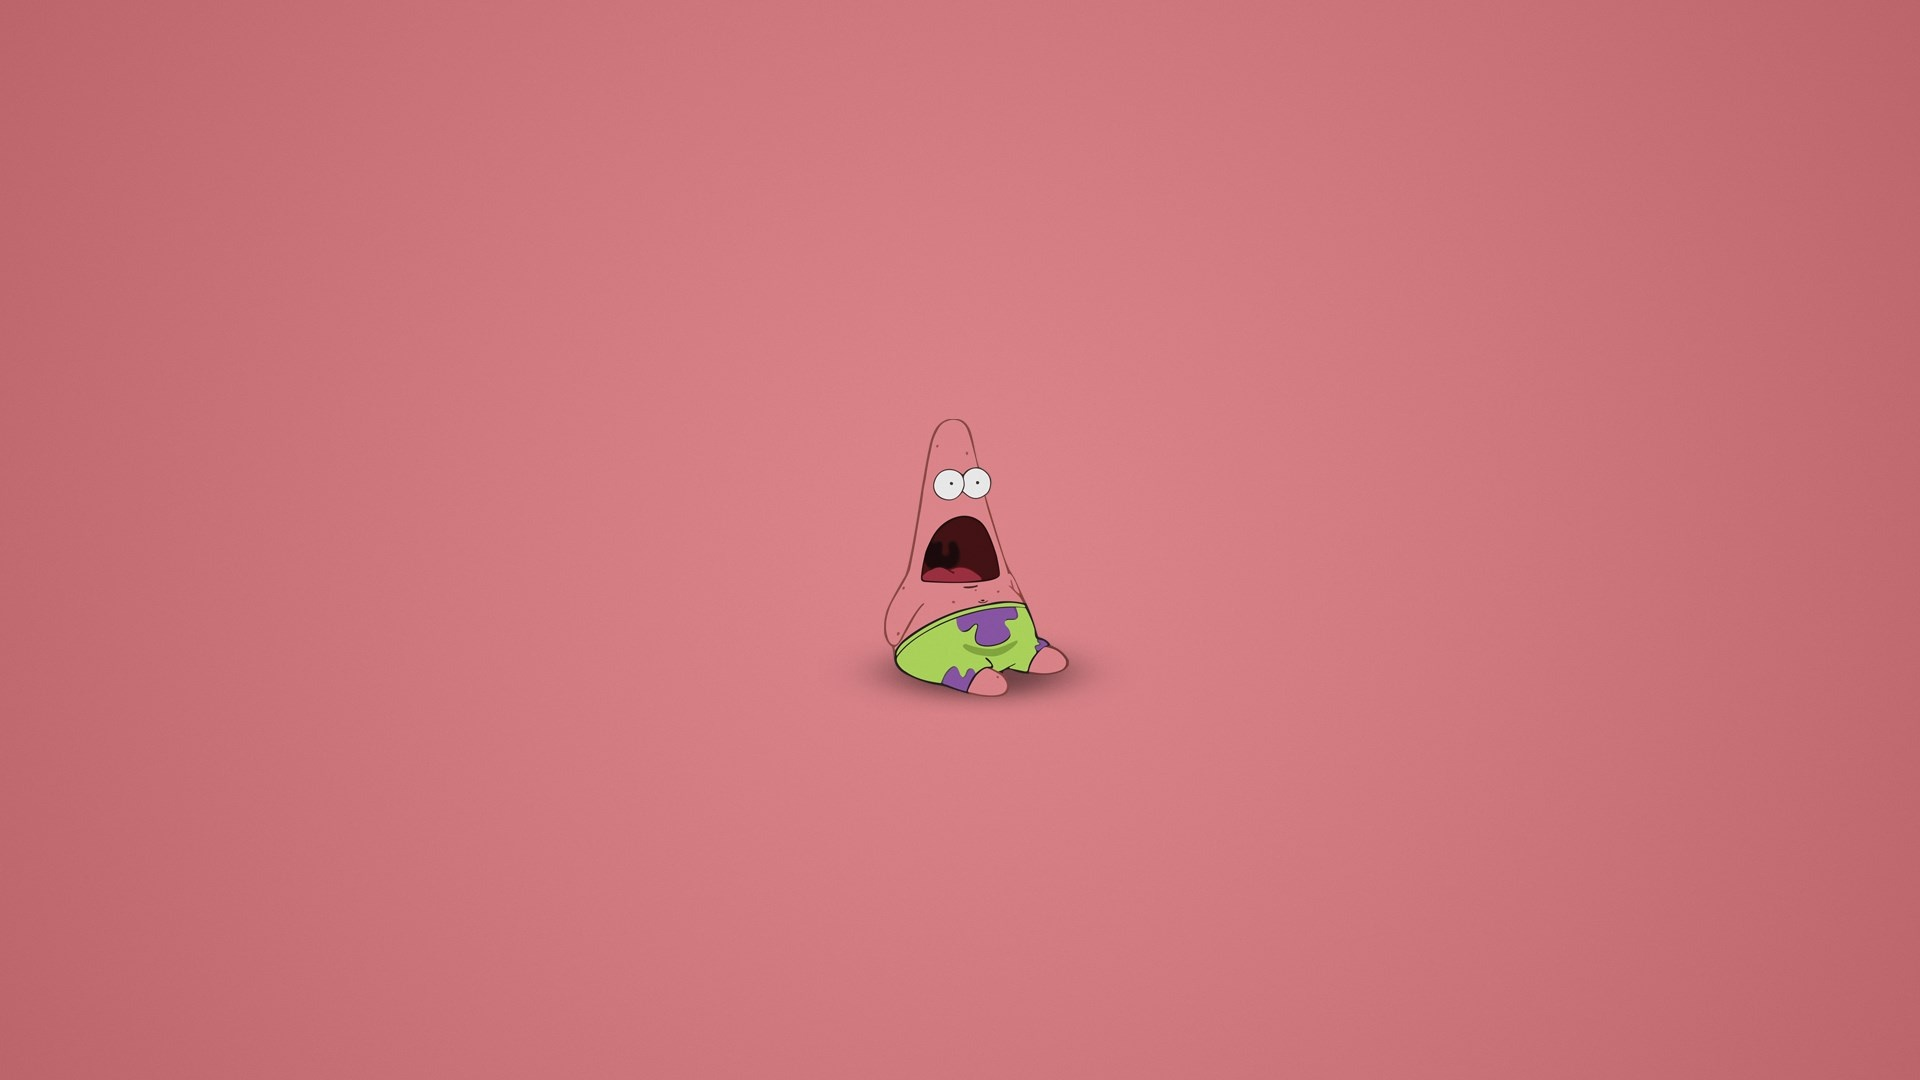 Patrick Wallpaper: Different Types and Styles